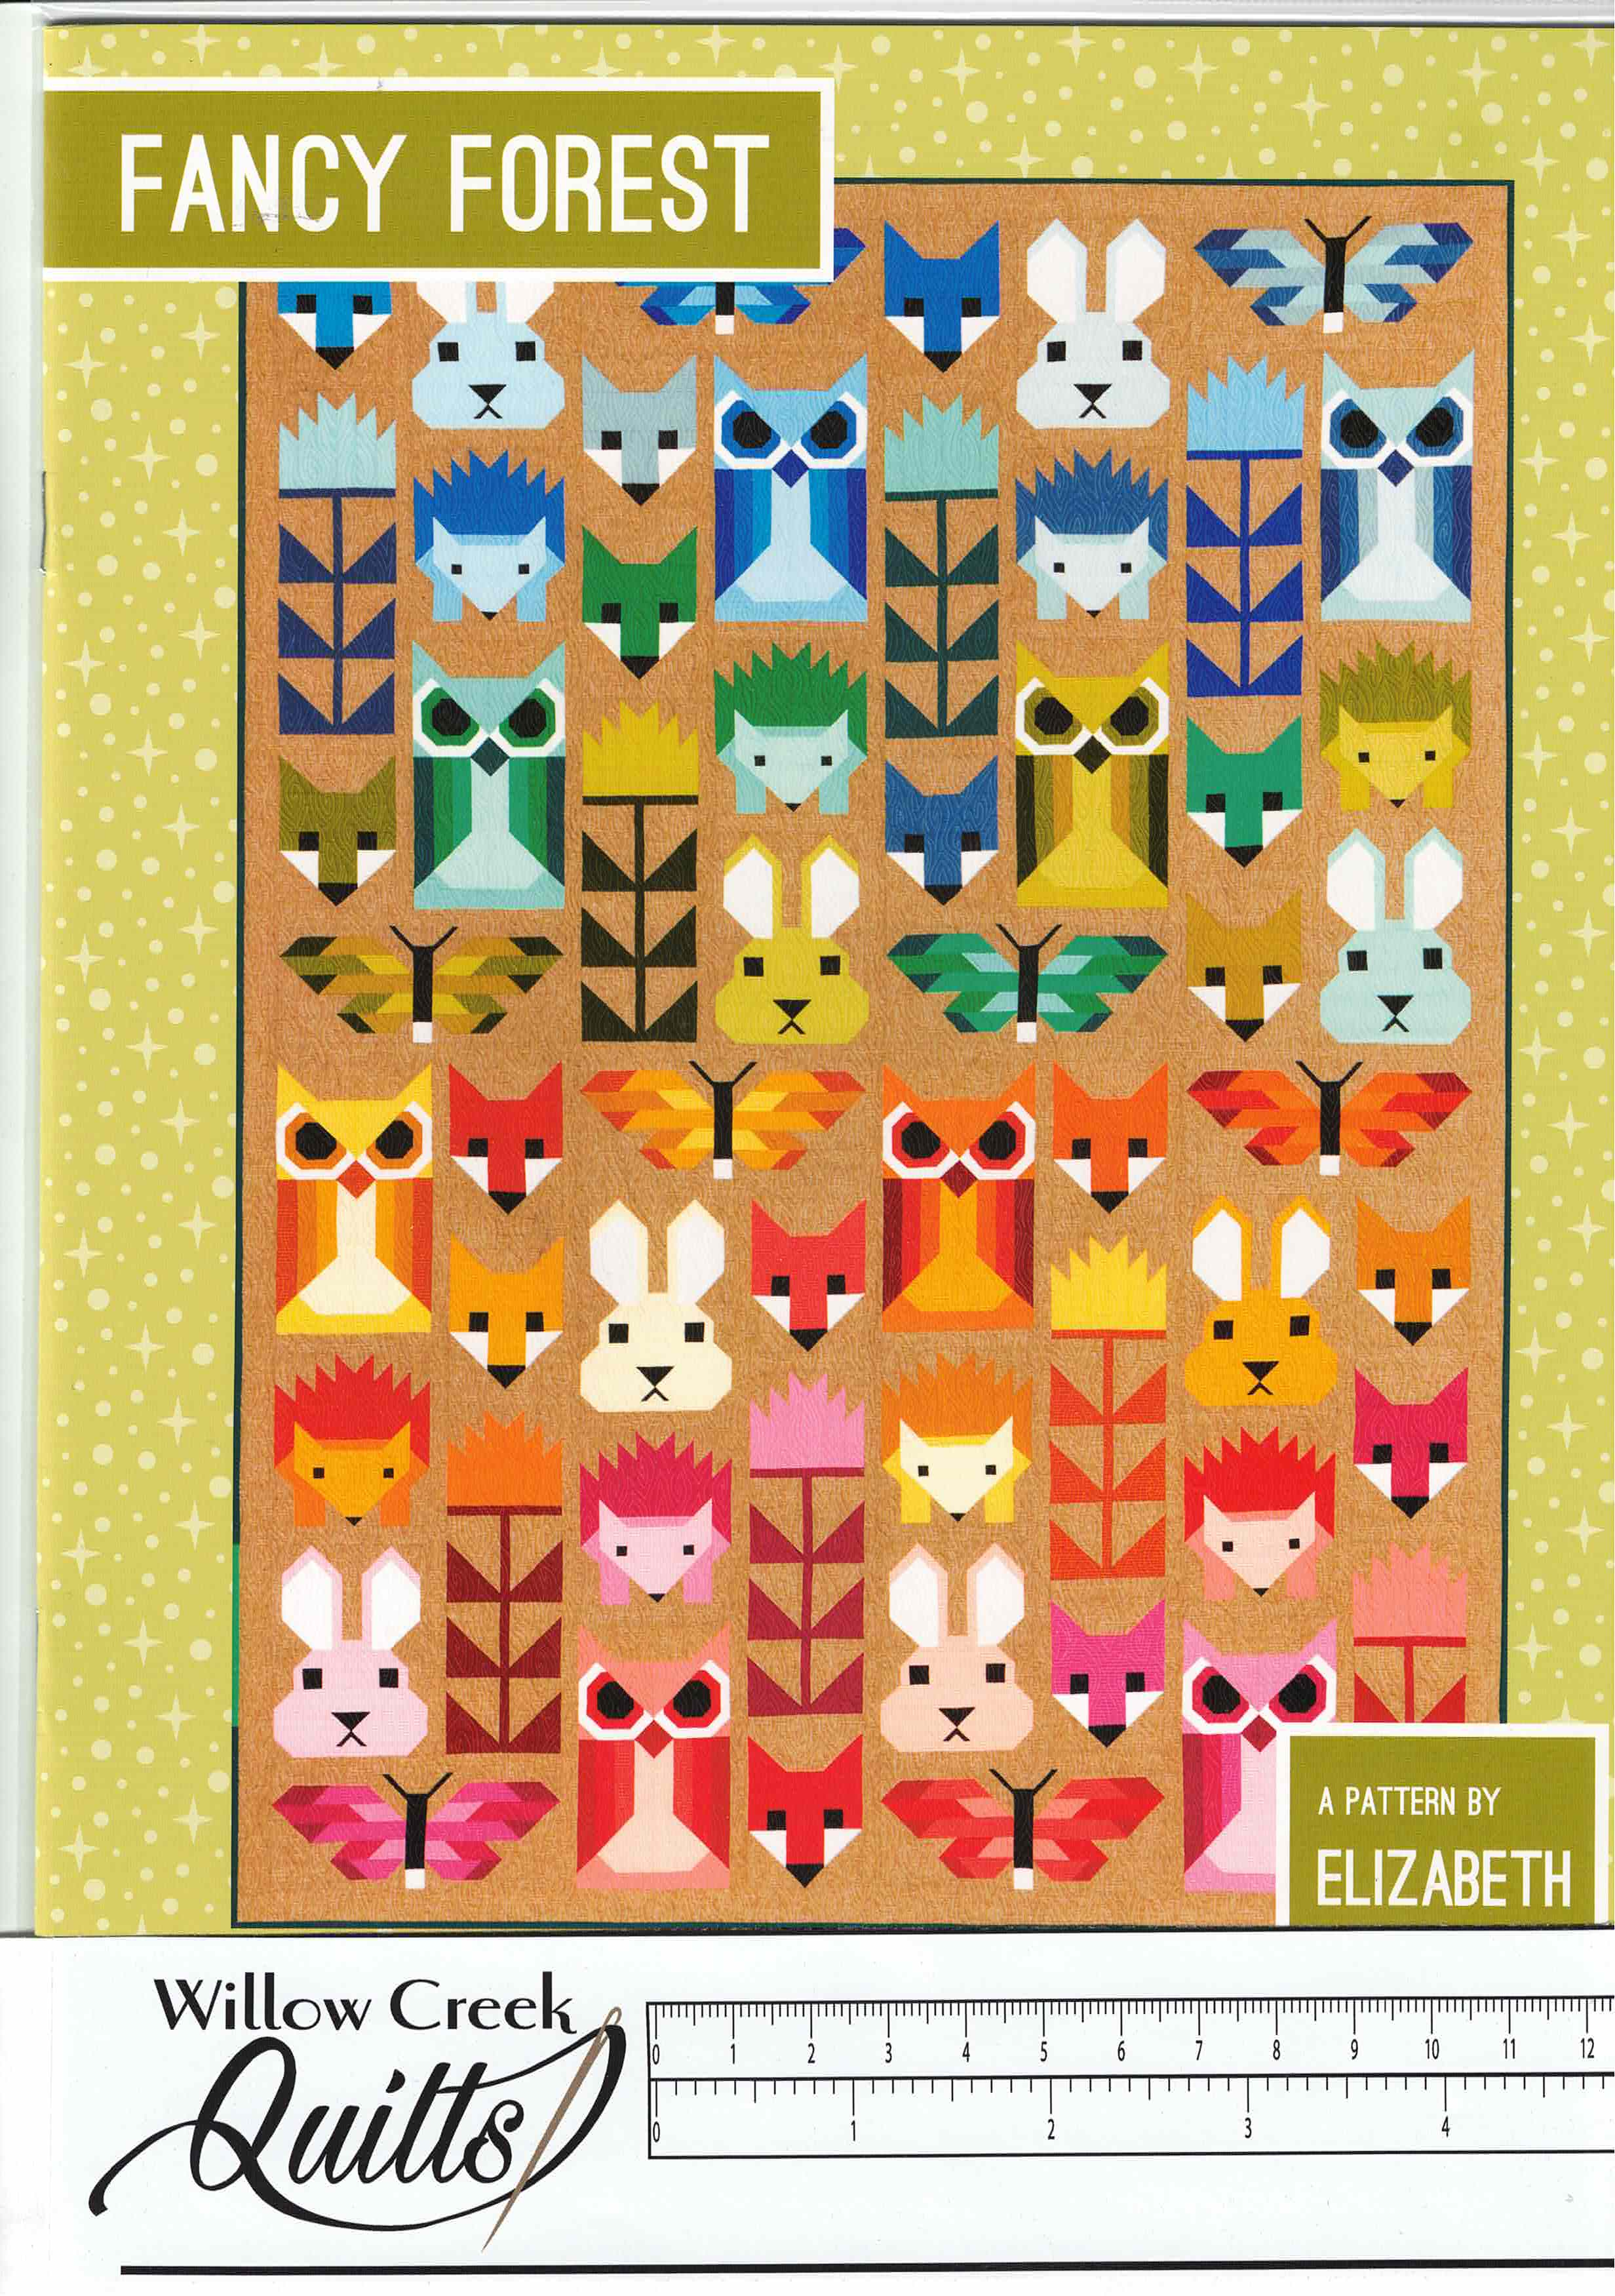 Forest Fancy pattern - EH-023